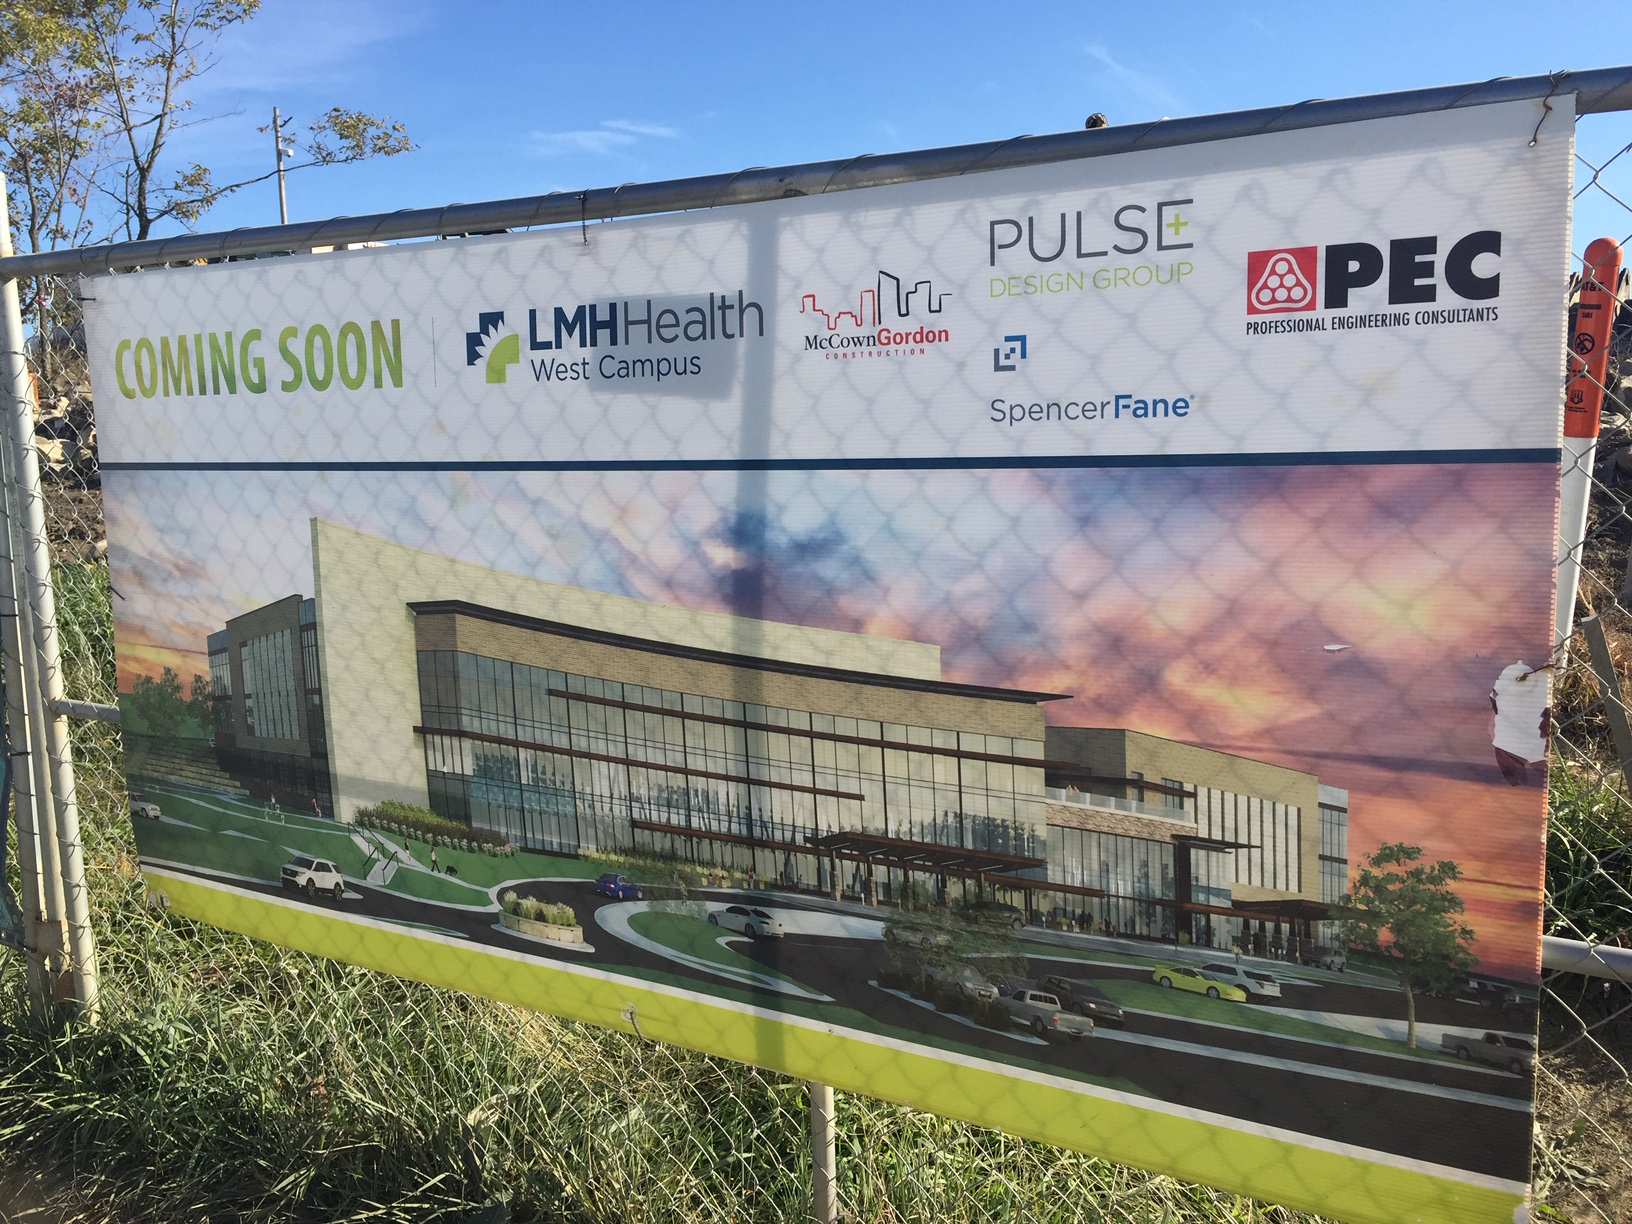 This poster, on a construction fence, depicts what the LMH Health West Campus will look like when completed.  The outpatient facility is part of the hospital's $100 million expansion plan. (Photo by J. Schafer)